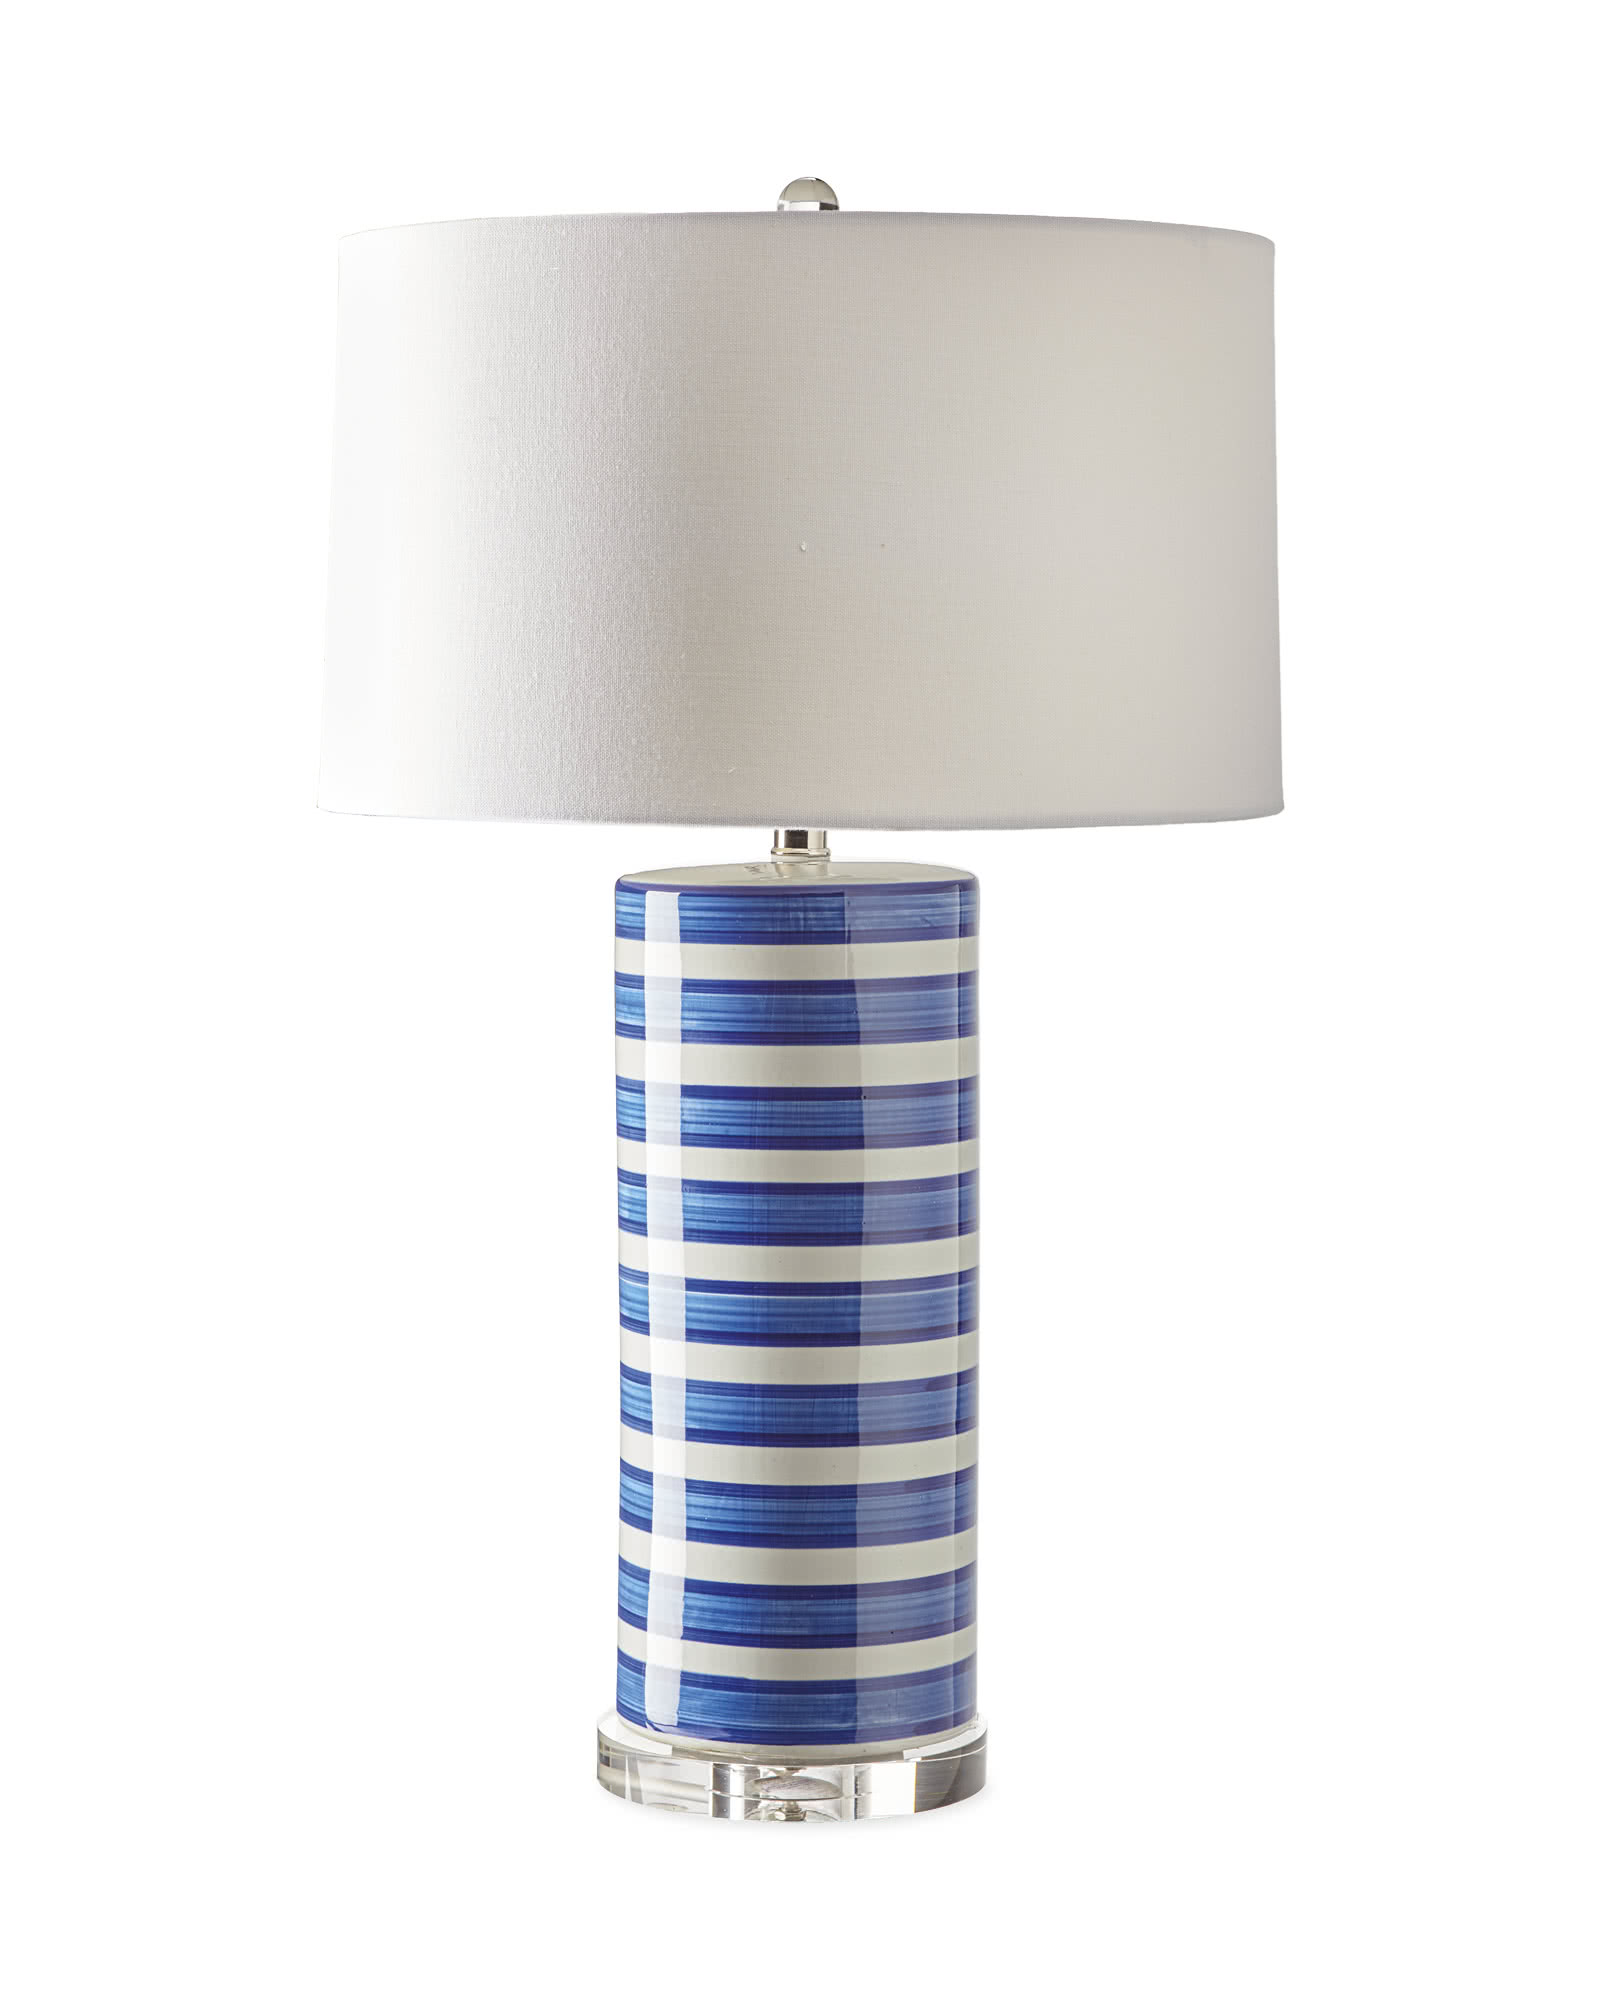 Ideal Davenport Table Lamp - Serena & Lily WB05